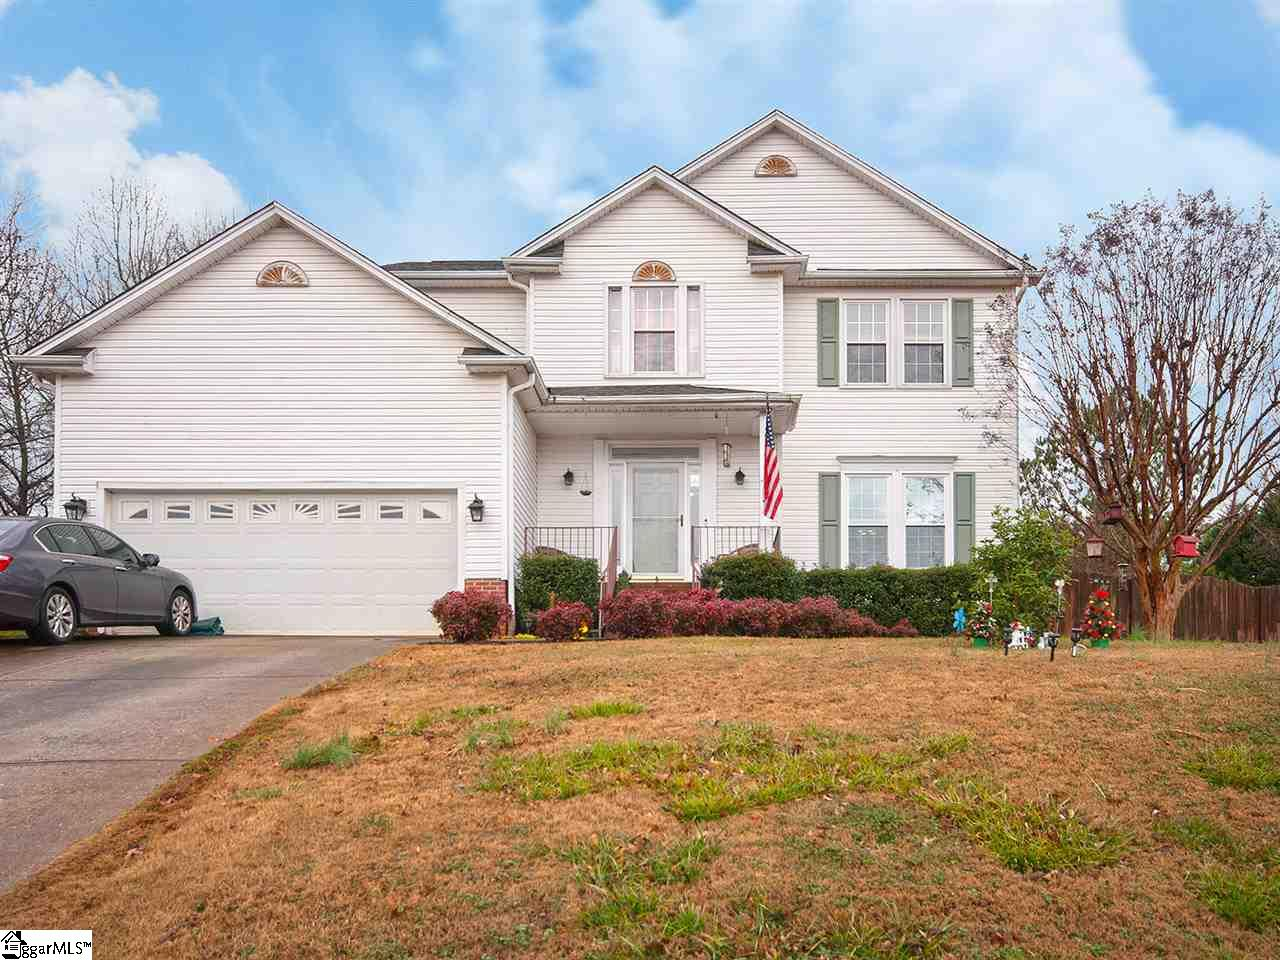 106 Marsh Creek Mauldin, SC 29662